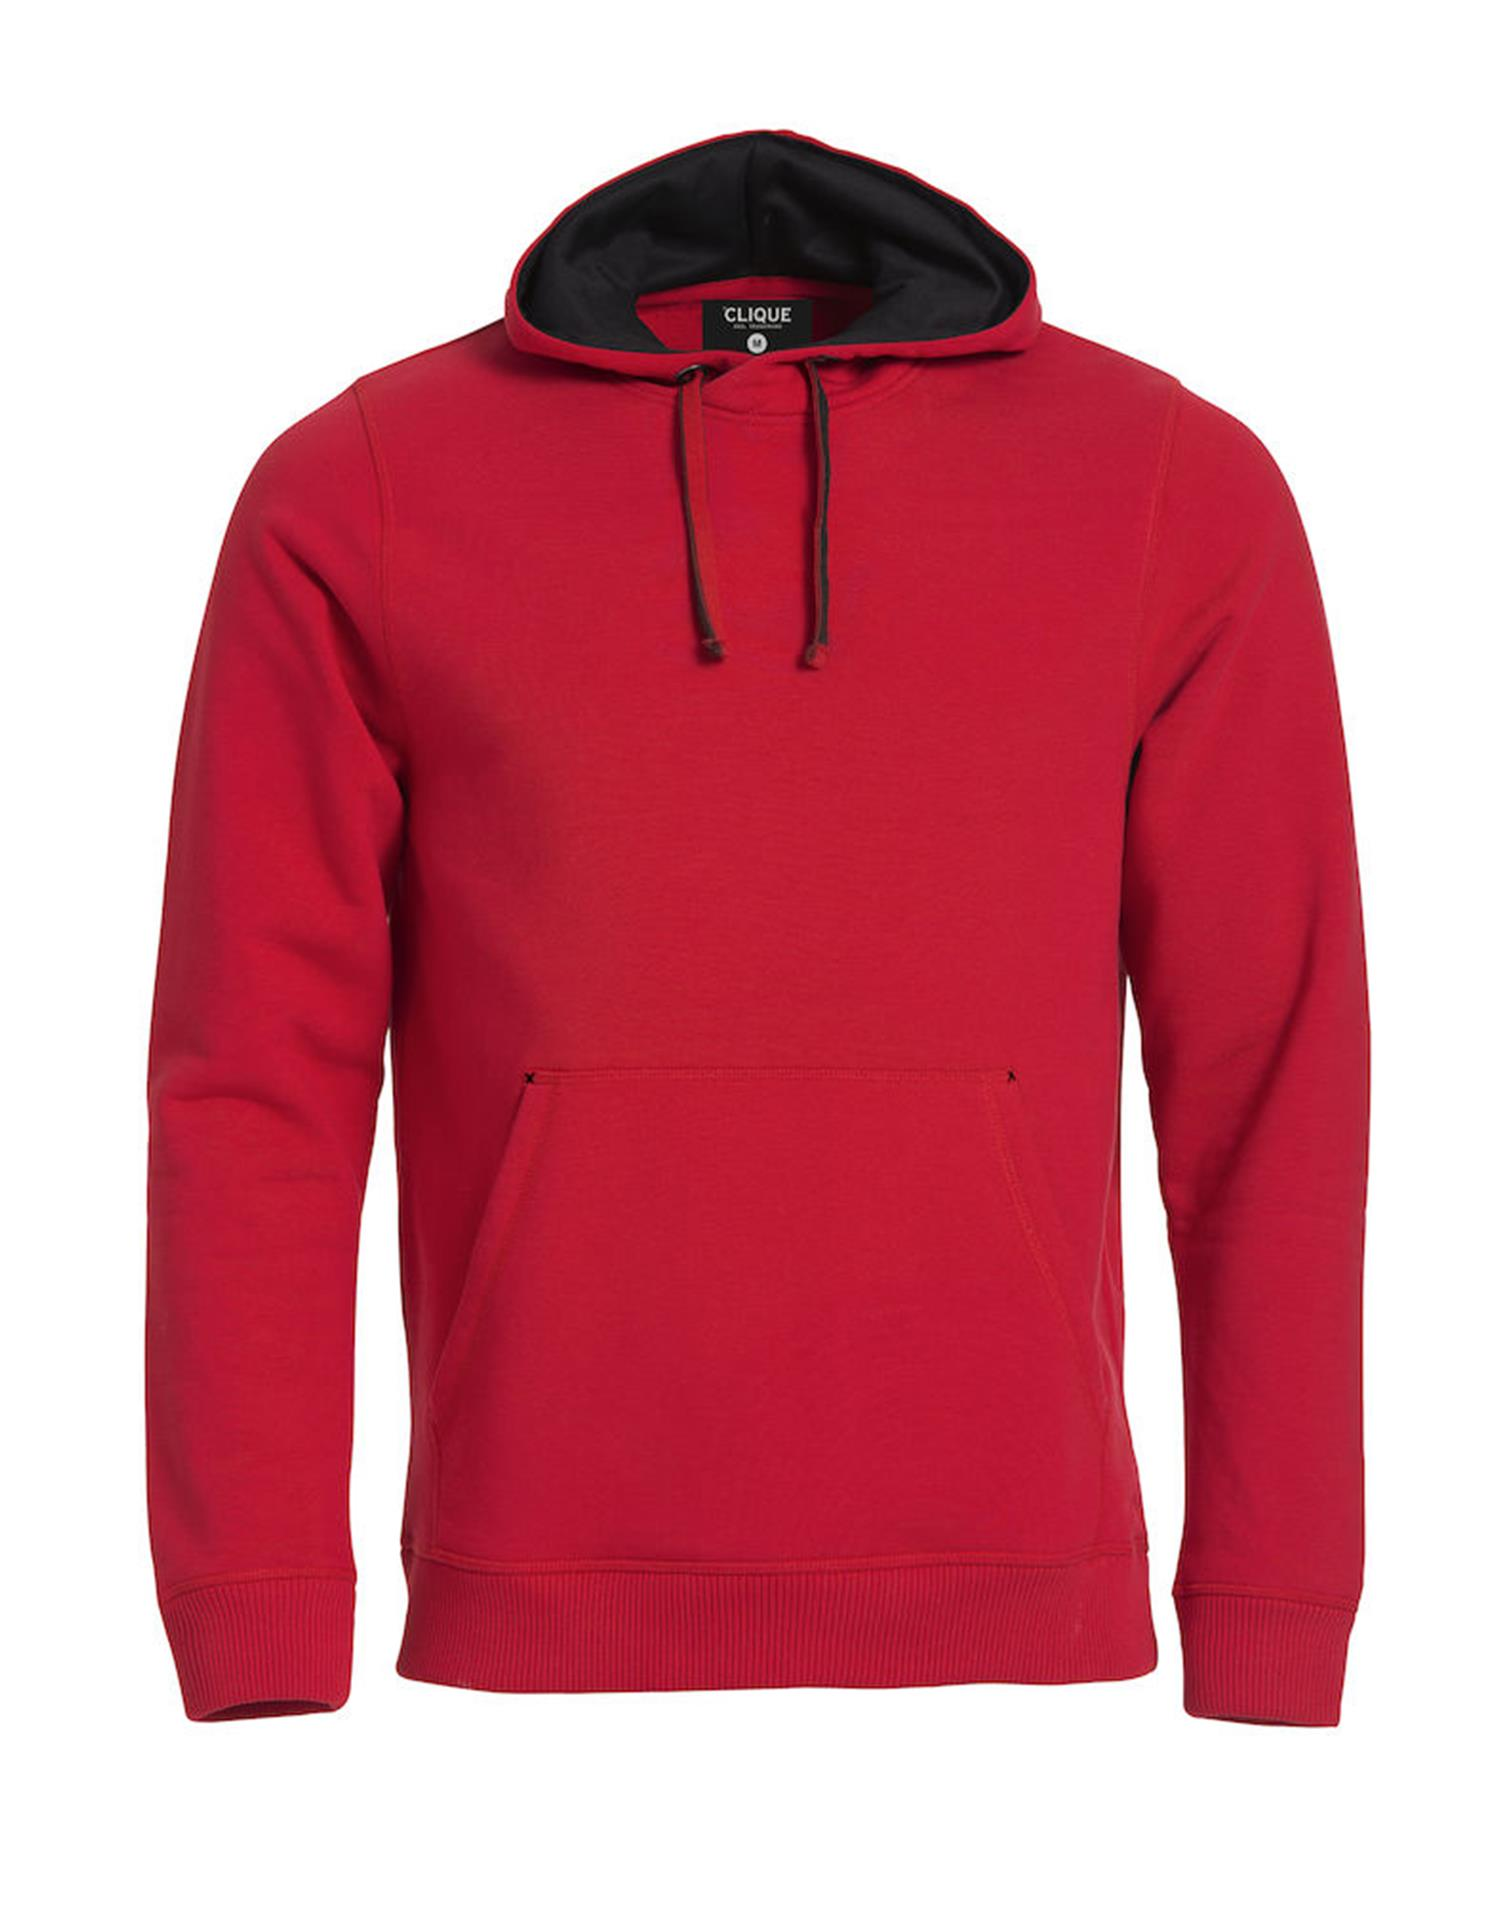 NewWave Classic Hoody (XS - ROSSO)